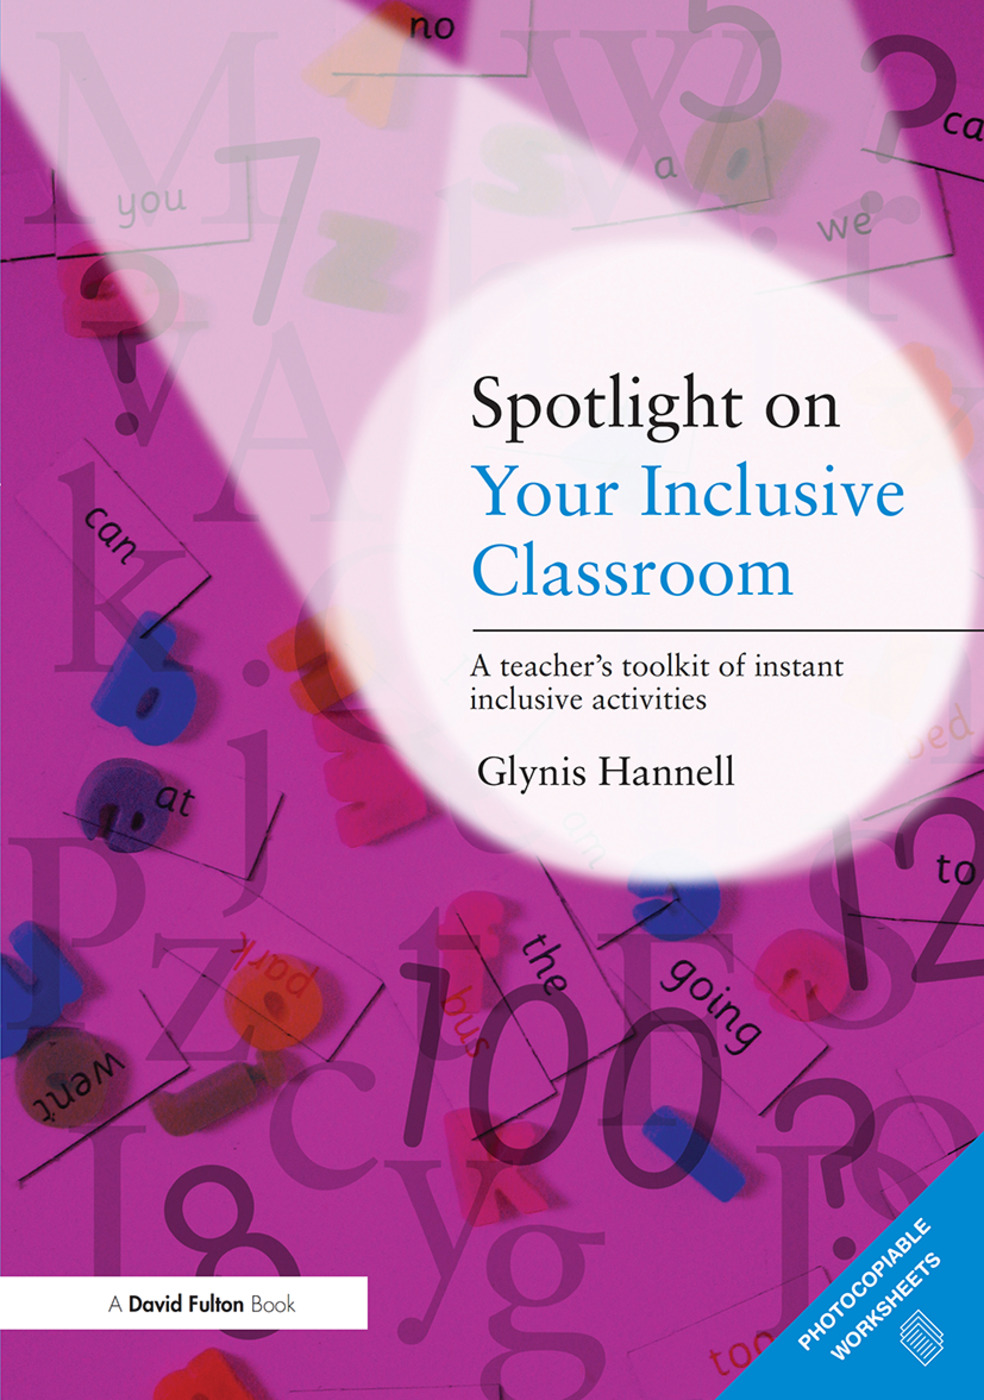 Spotlight on Your Inclusive Classroom: A Teacher's Toolkit of Instant Inclusive Activities book cover